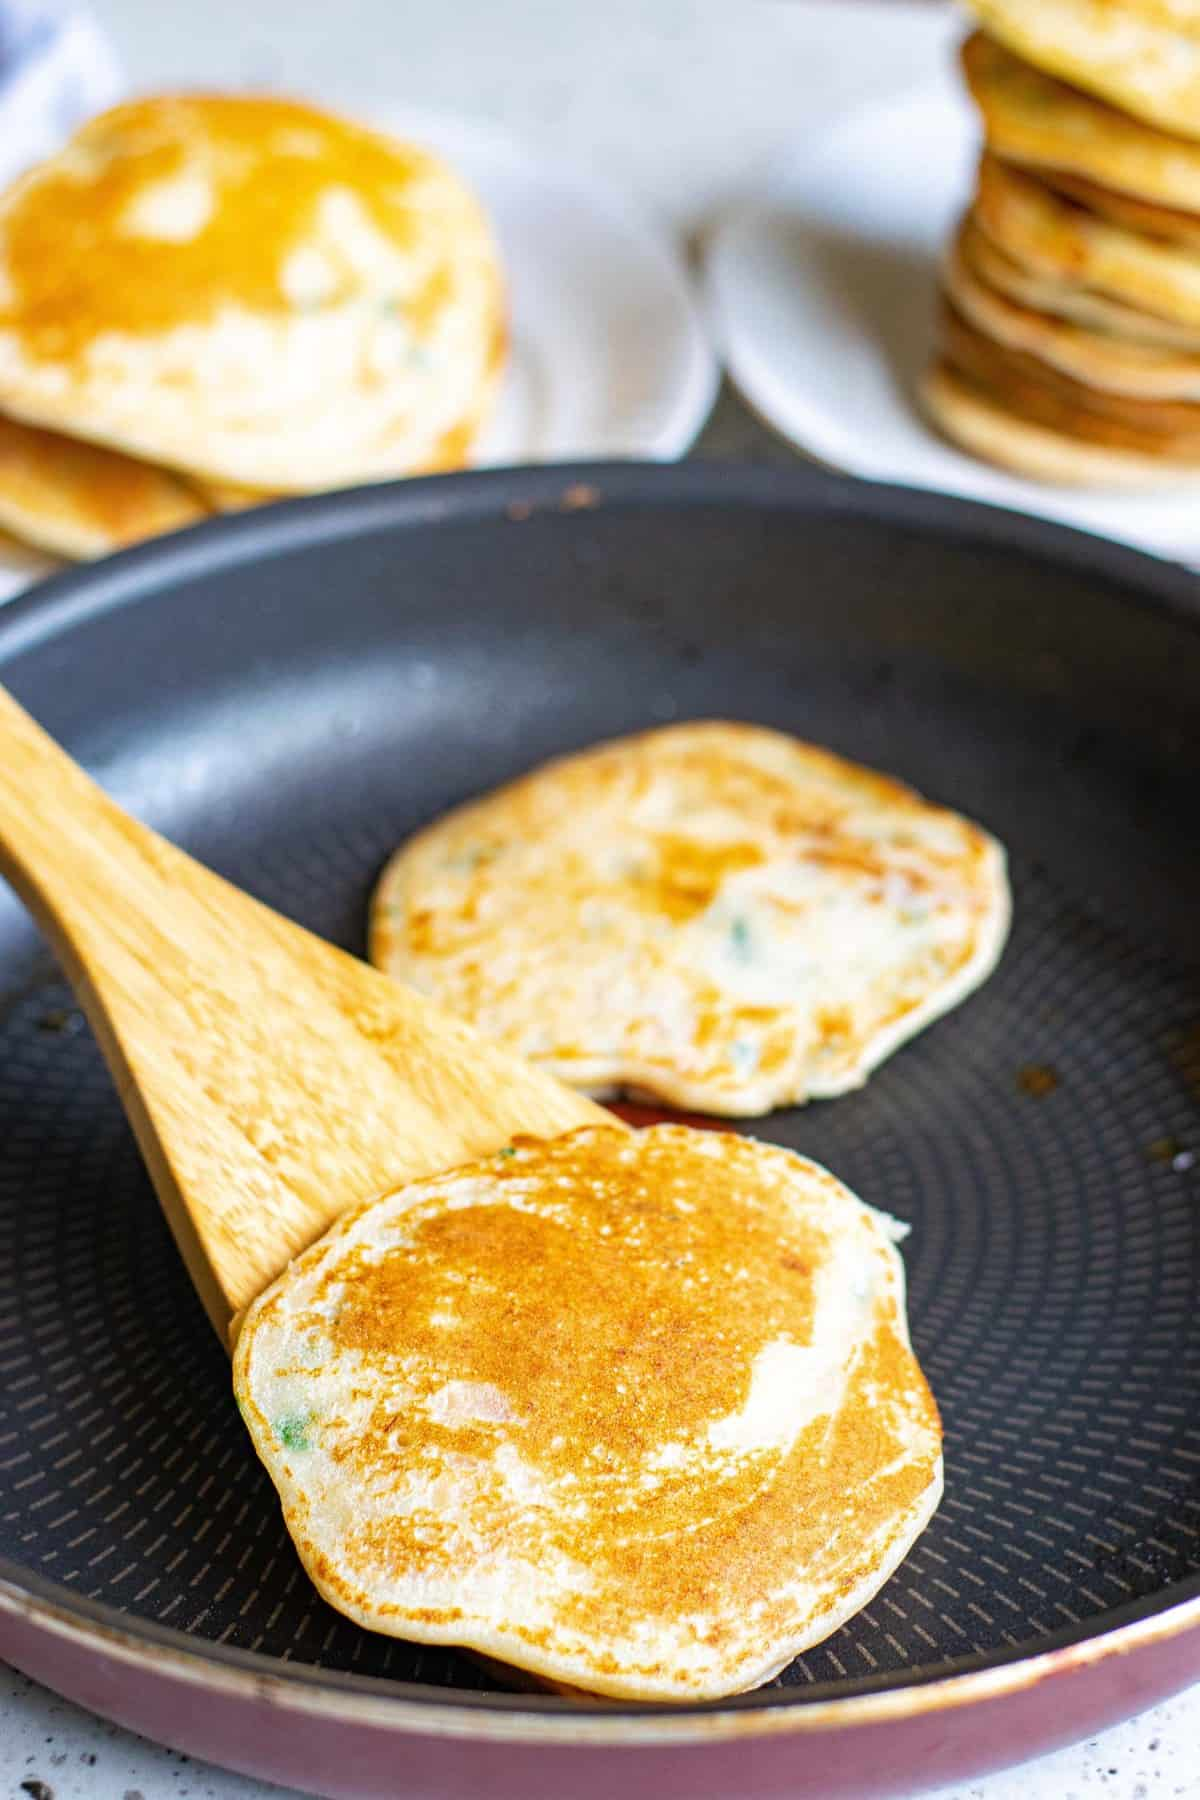 Cooked pancakes on a black frying pan.